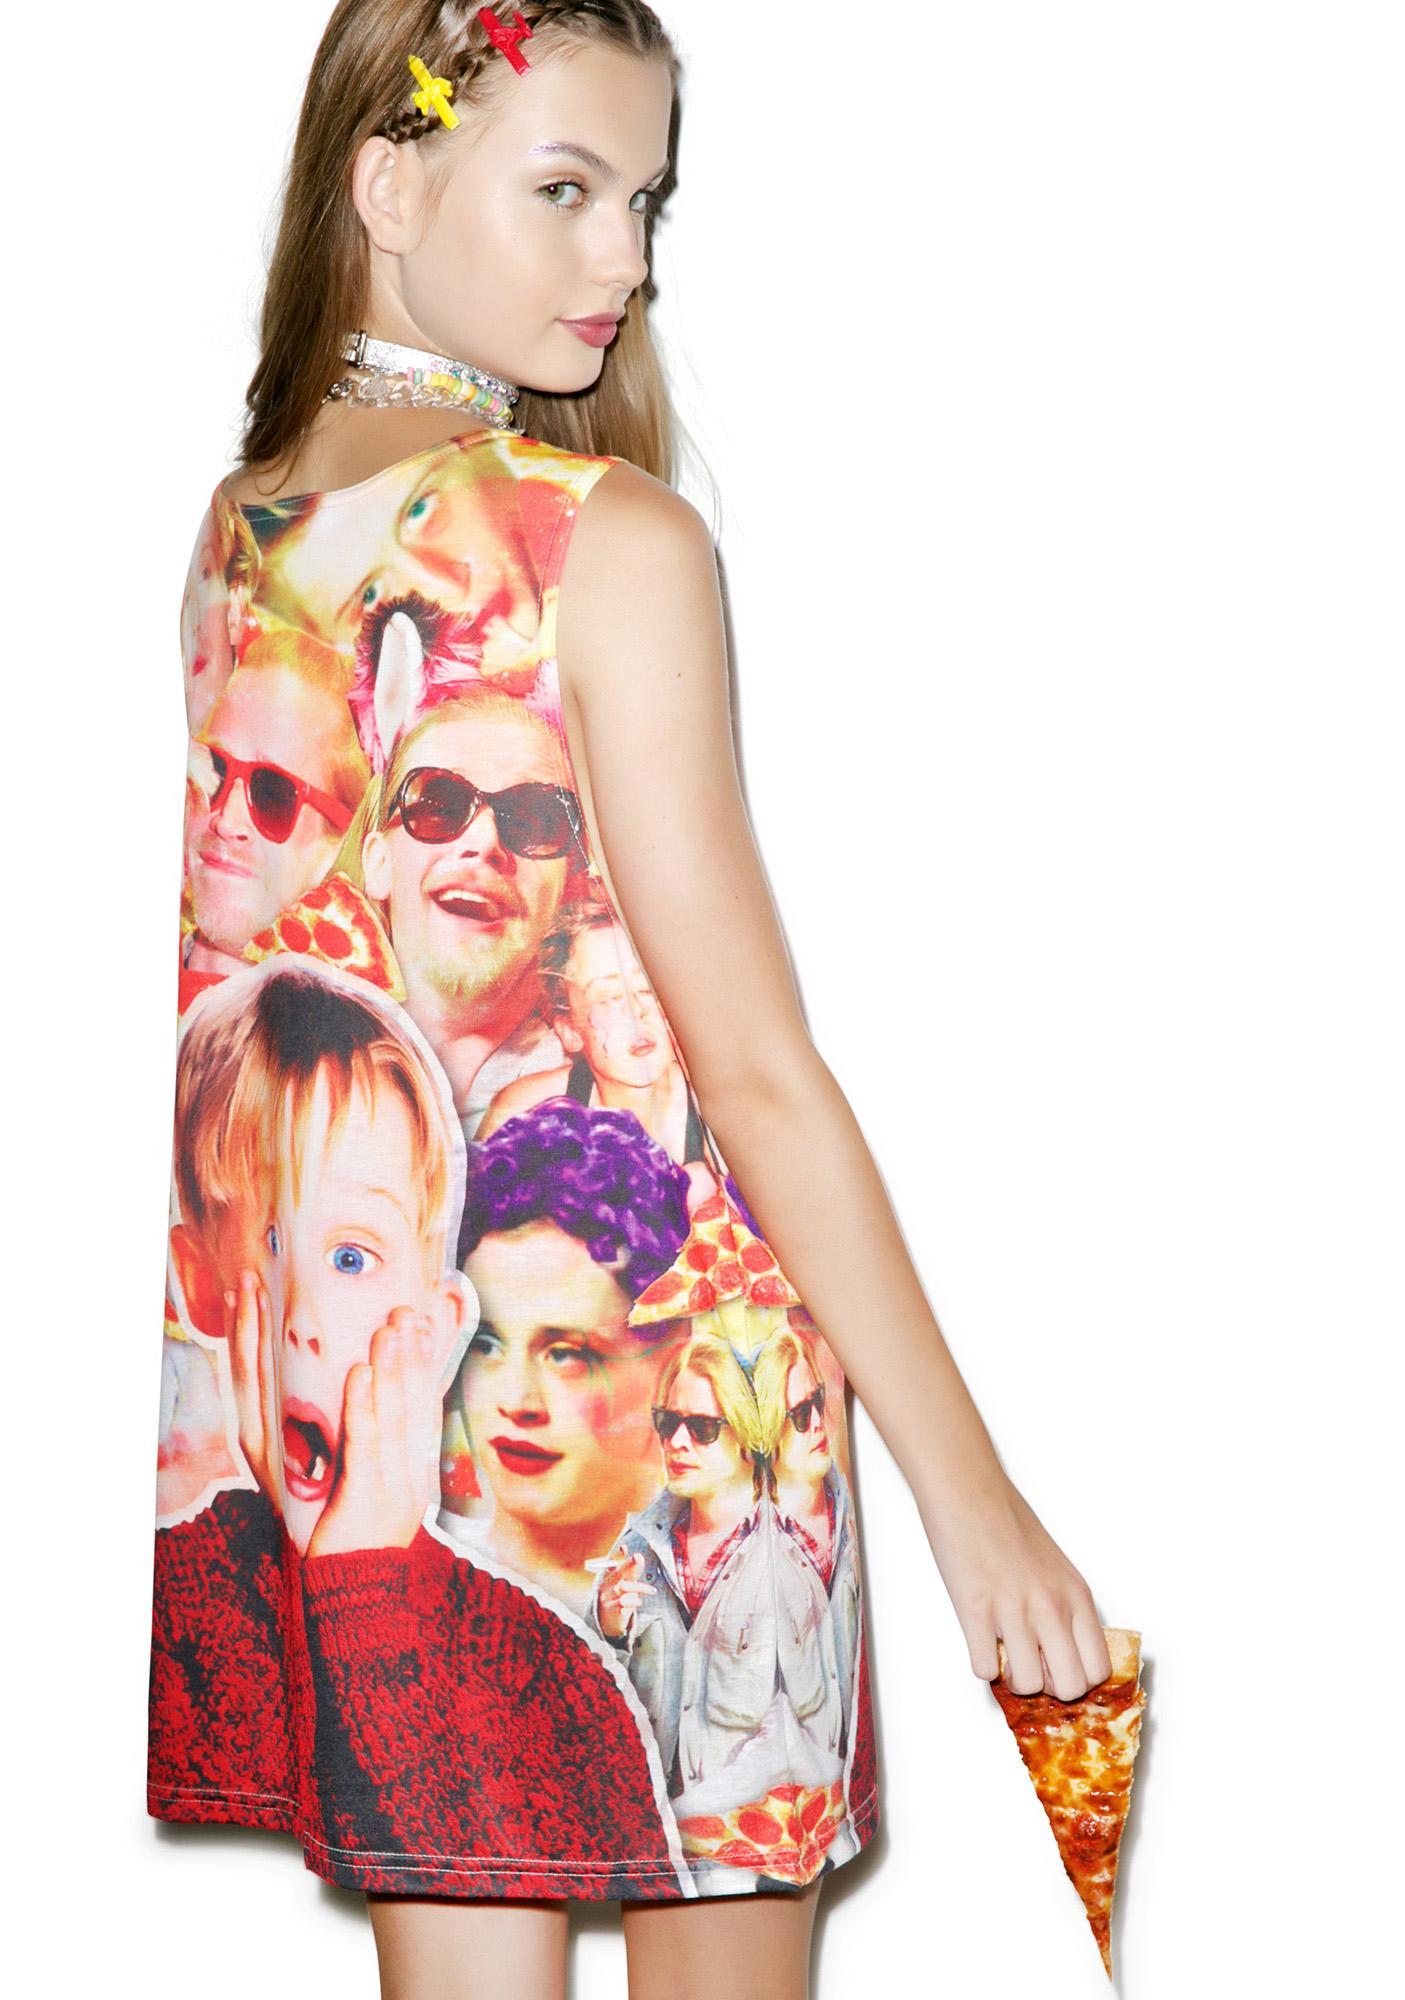 Pizza Party Monster Tank Top